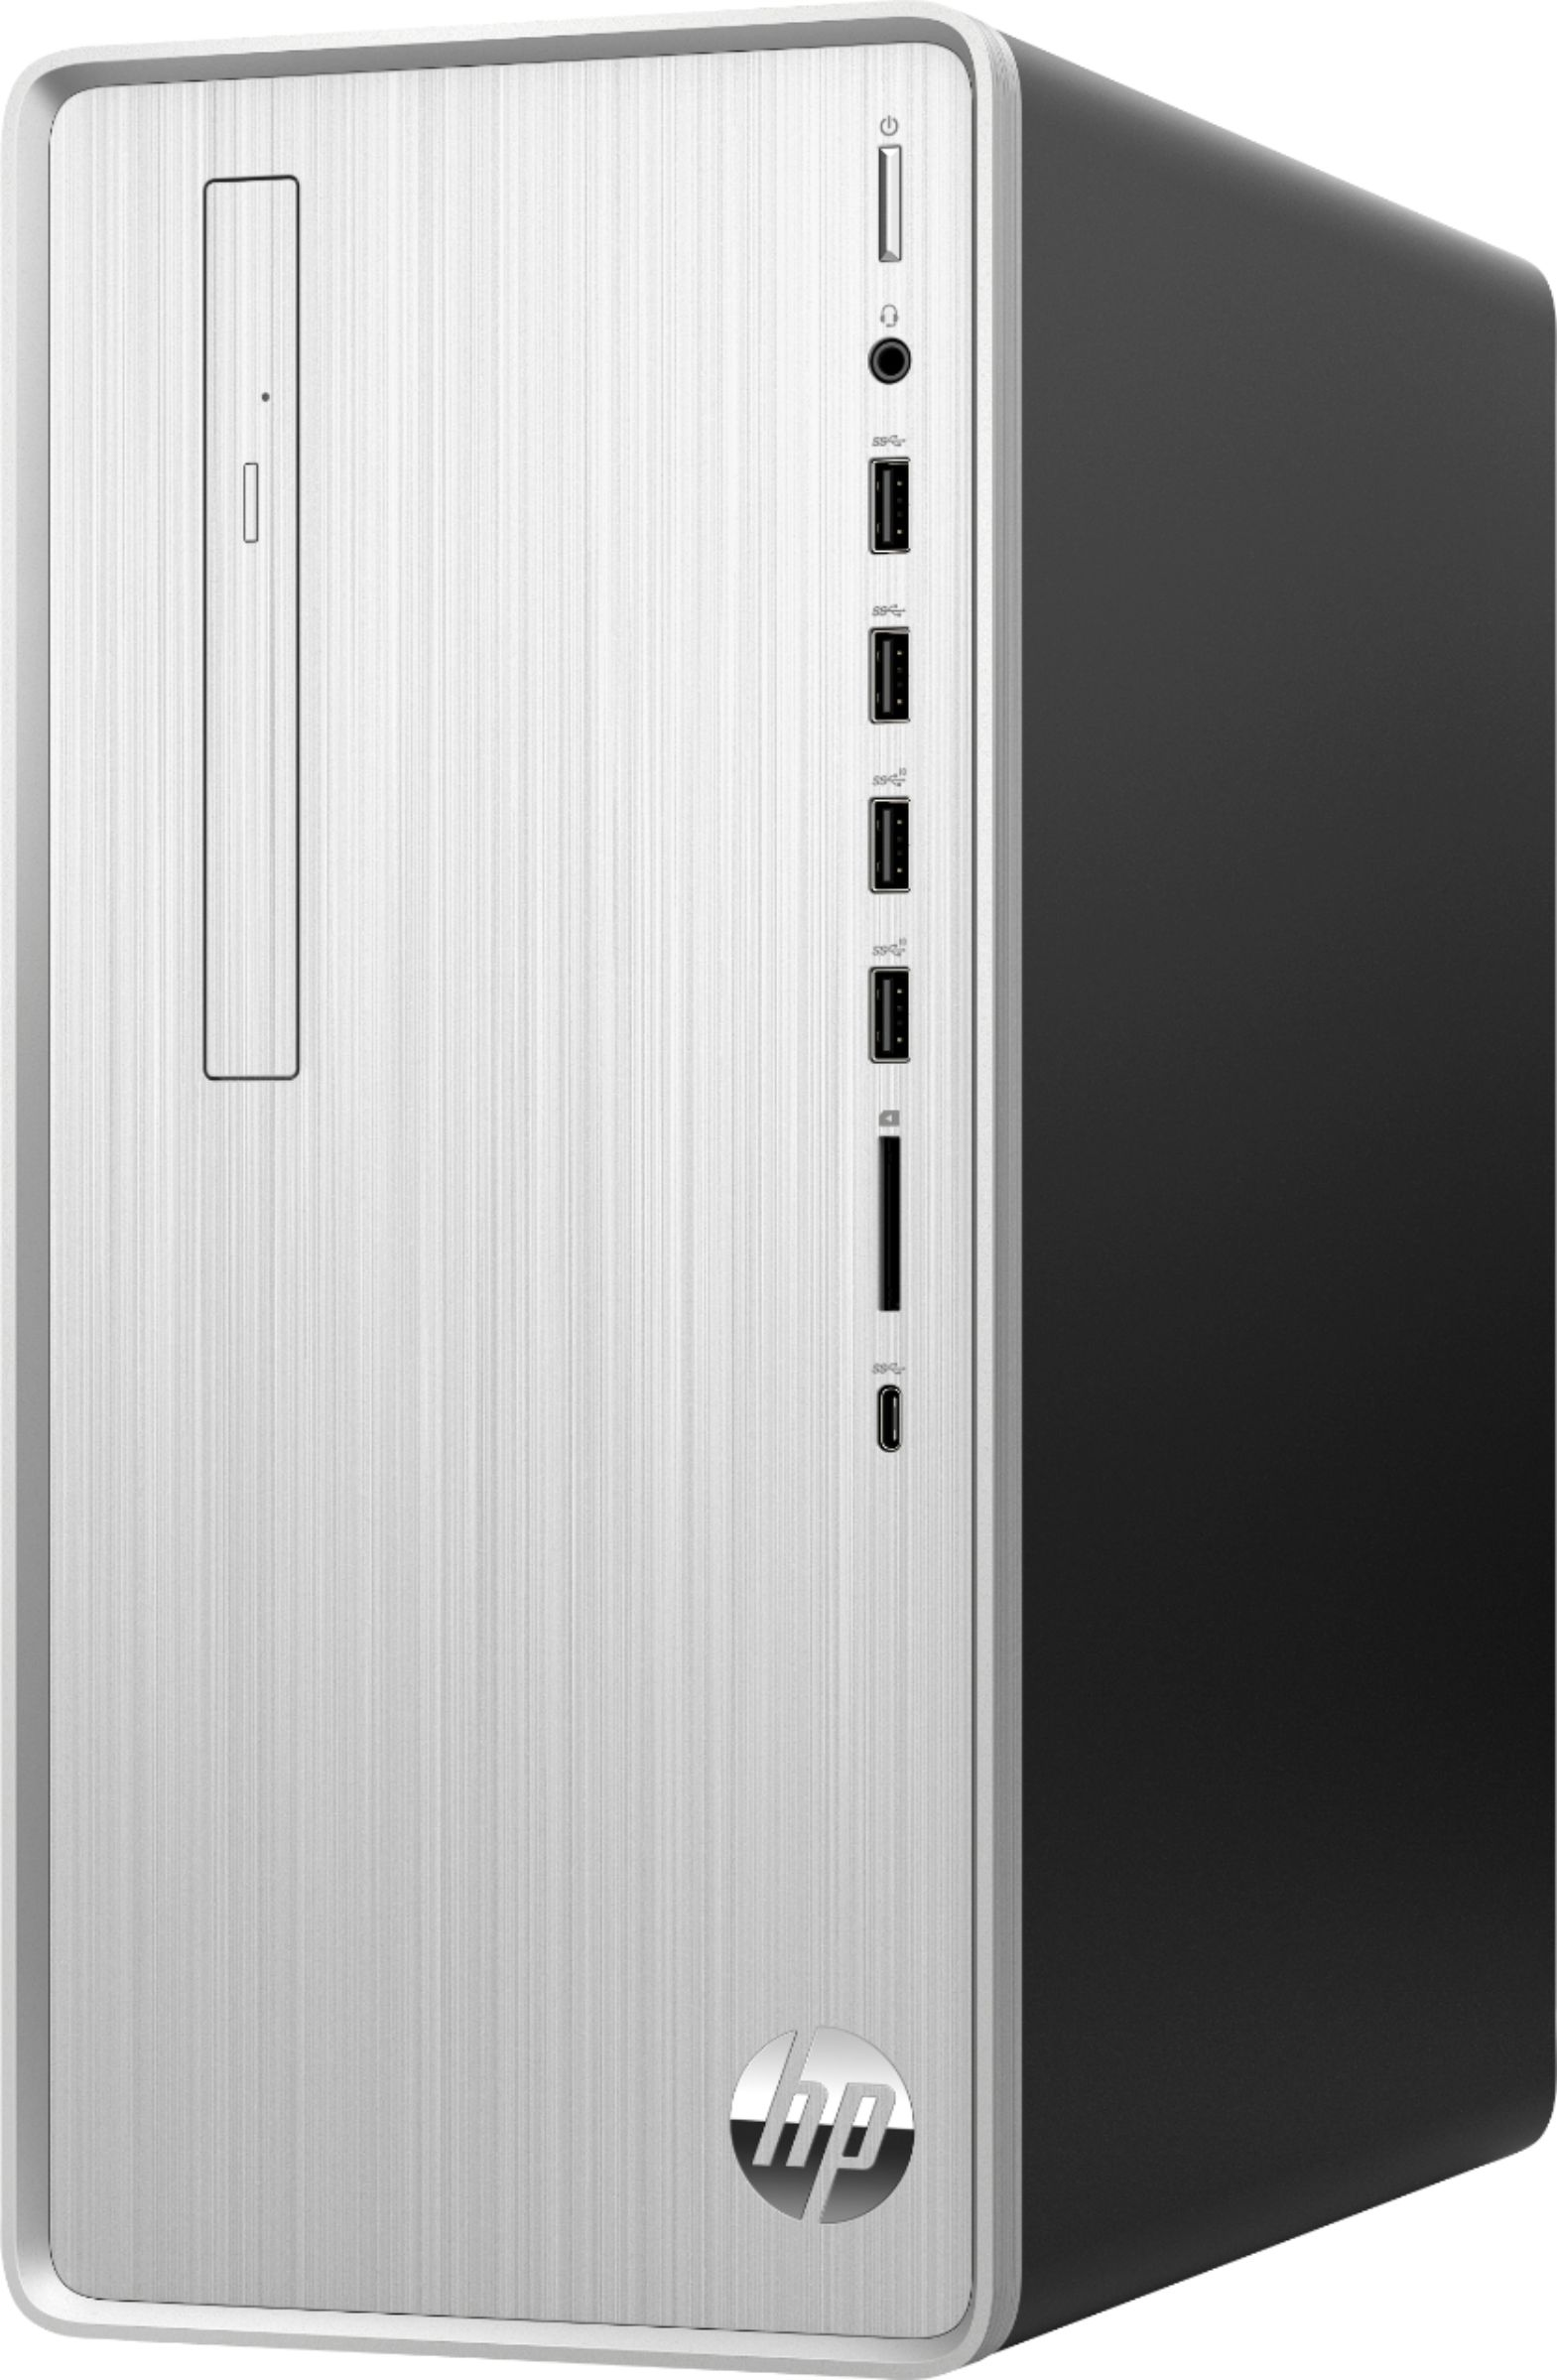 Left Zoom. HP - Pavilion Desktop - Intel Core i3 - 8GB Memory - 256GB Solid State Drive - Natural Silver.